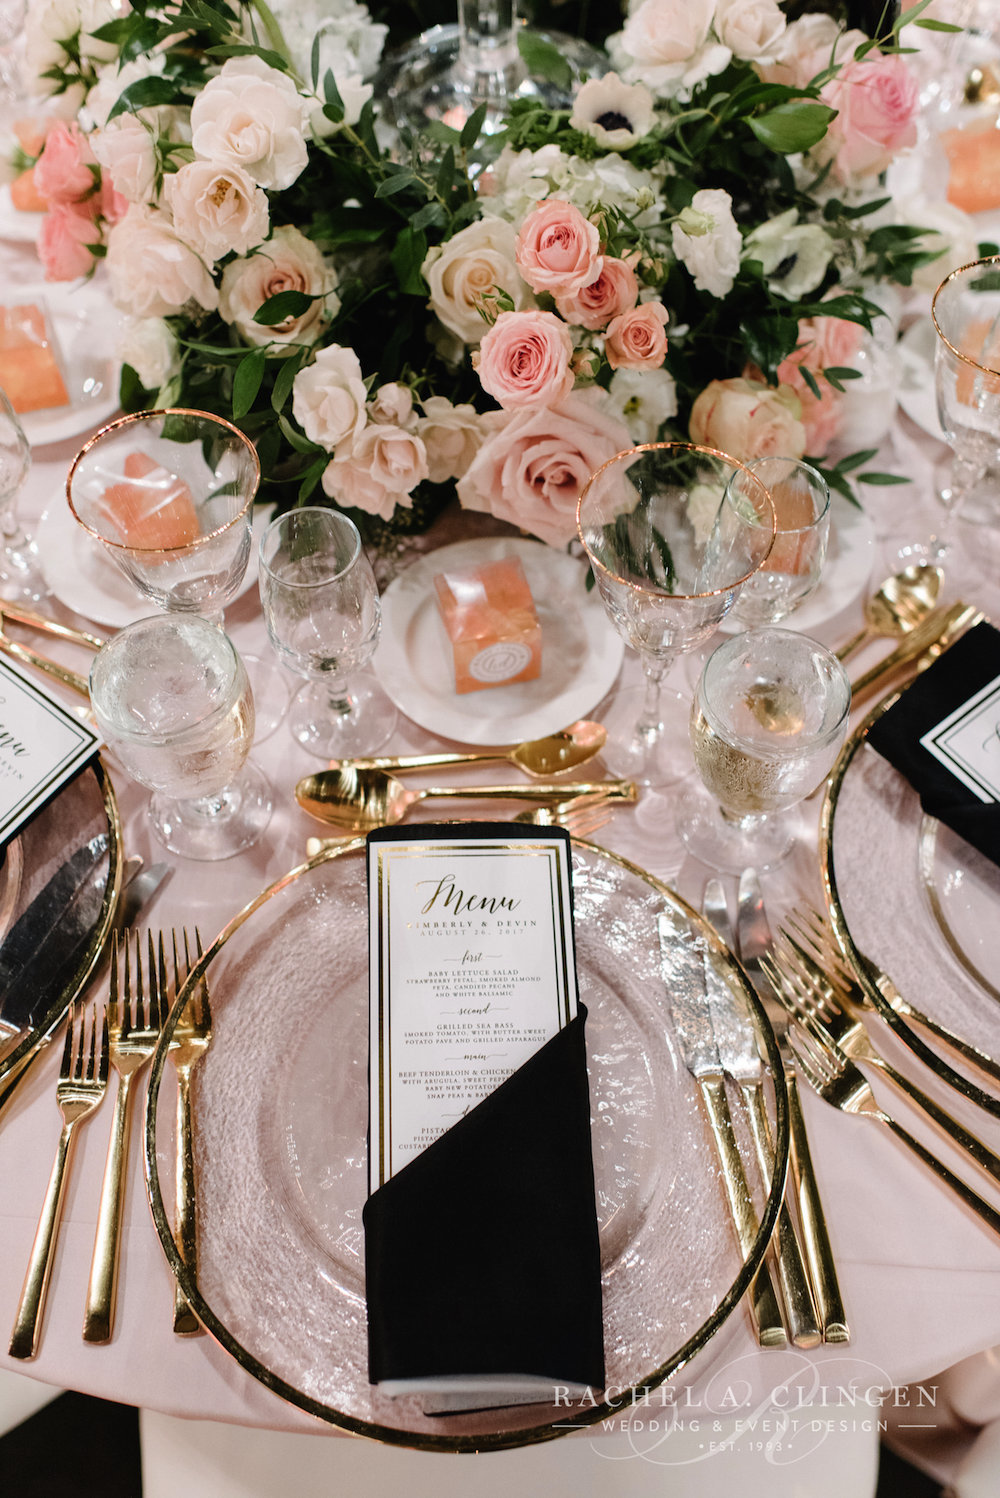 blush-pink-wedding-decor-joli-events-home